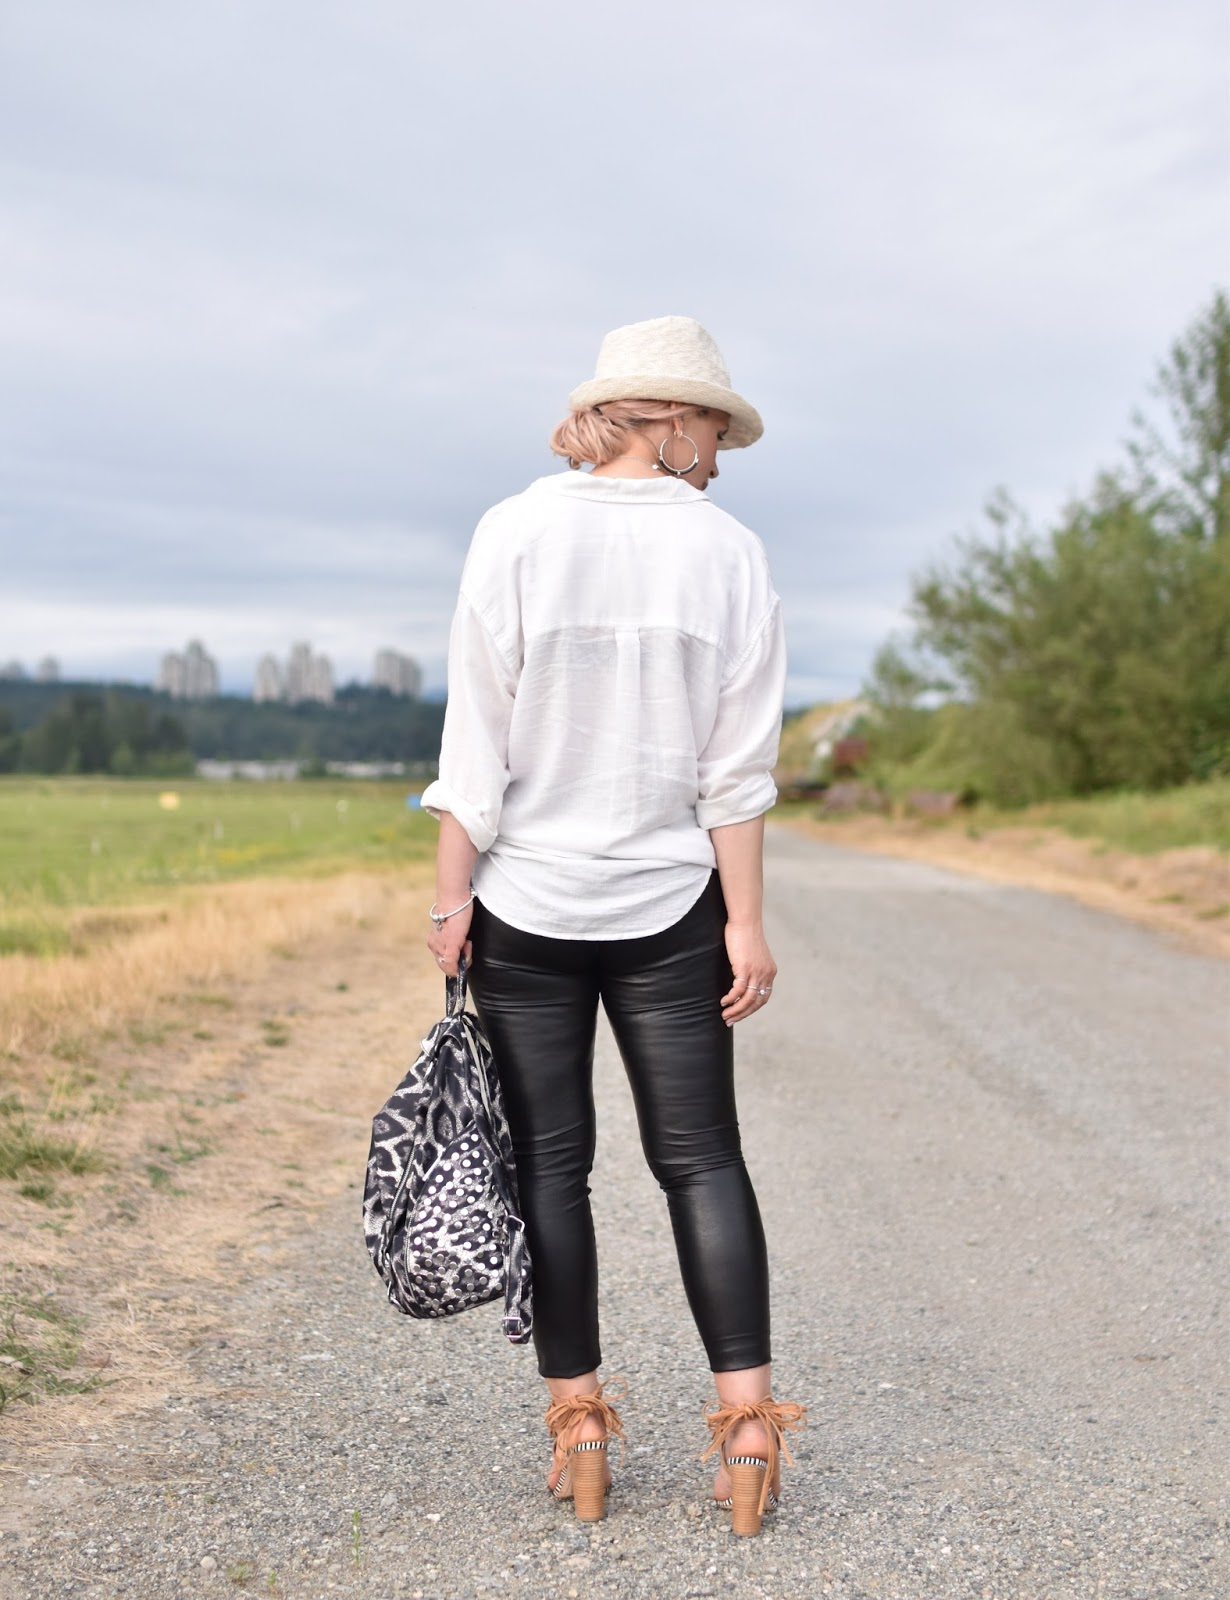 Monika Faulkner personal style inspiration - black vegan leather leggings, oversized white shirt, beaded sandals, straw fedora, leopard-patterned backpack